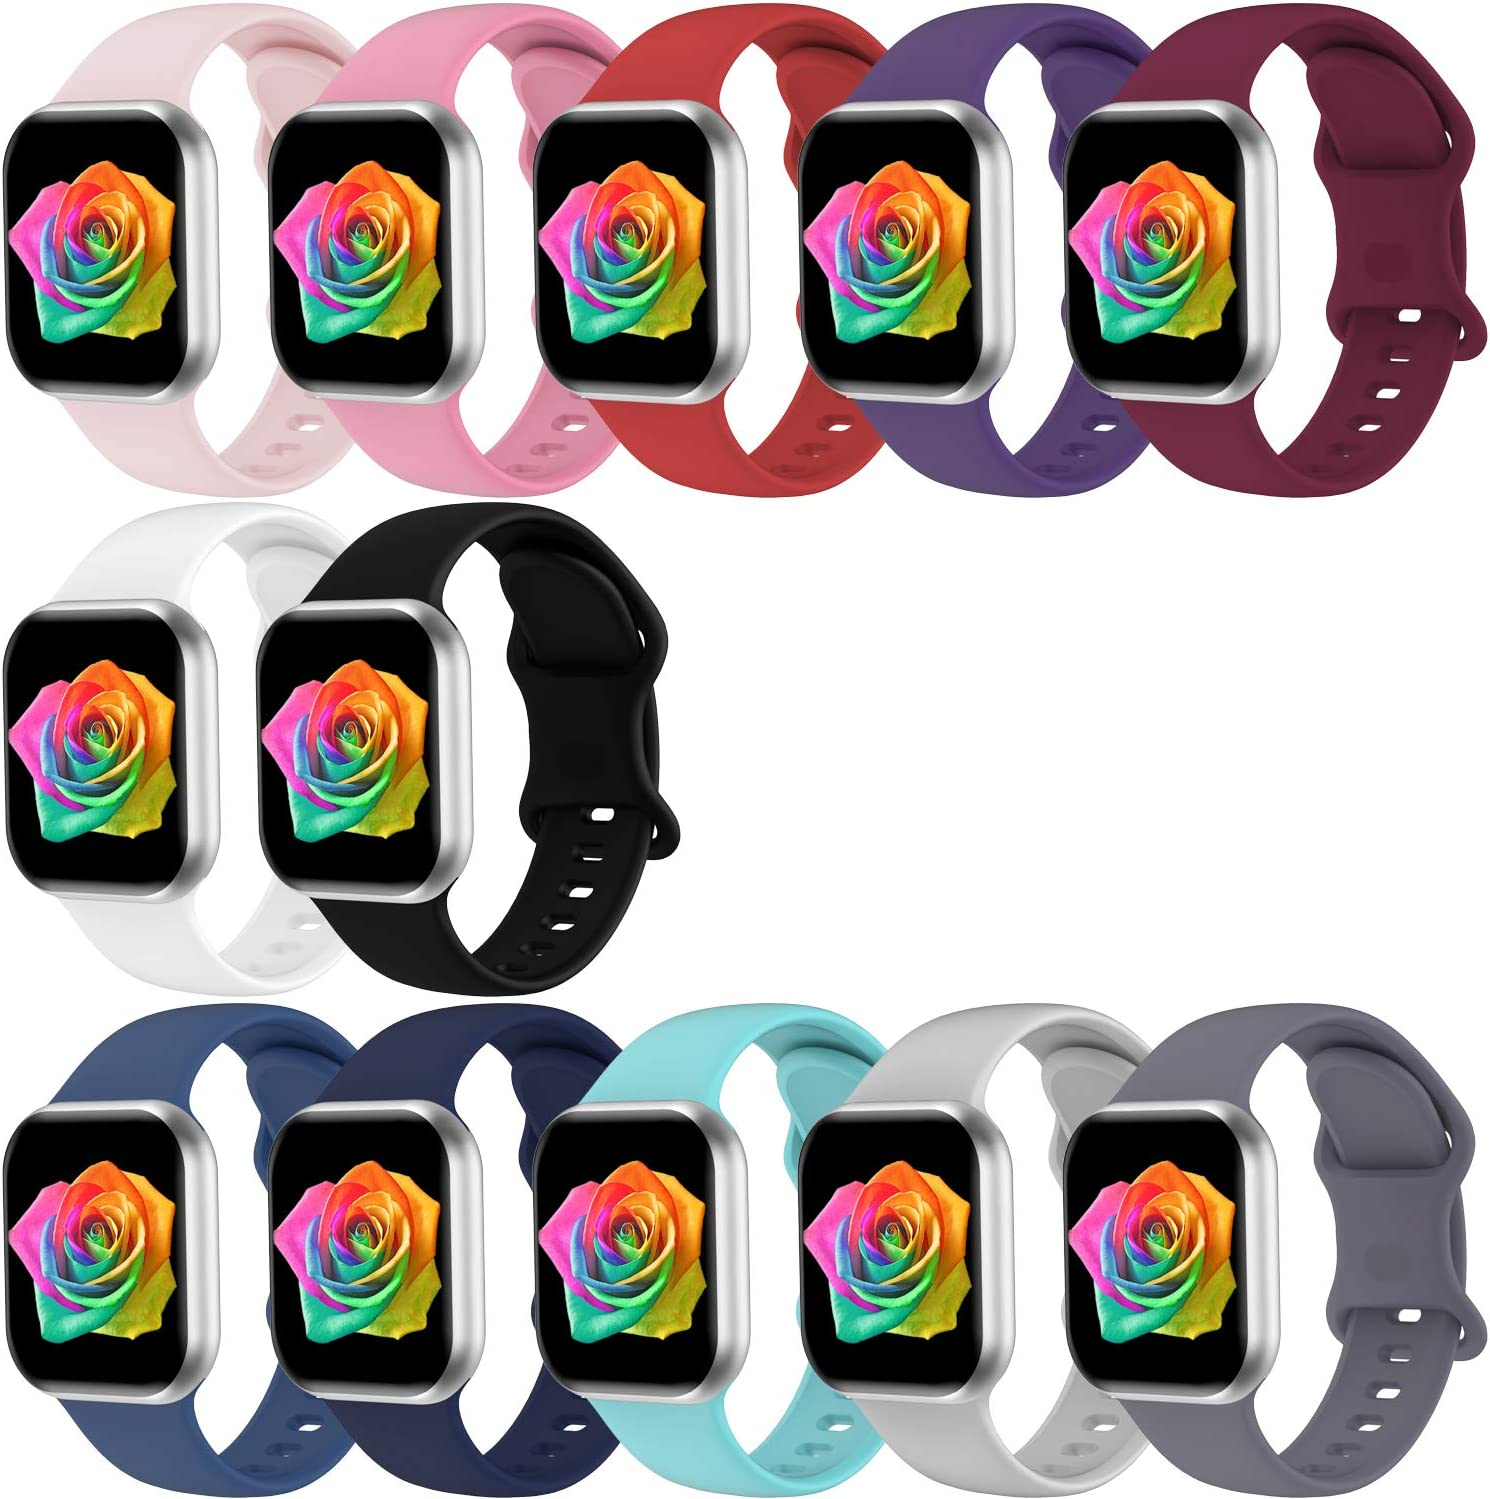 Bravely klimbing Compatible with App le Watch Bands 38mm 40mm 42mm 44mm, Soft Silicone Sport Replacement Strap Women Men Compatible with iWatch Series 6, Series 3, Series 5 4 3 2 1 SE